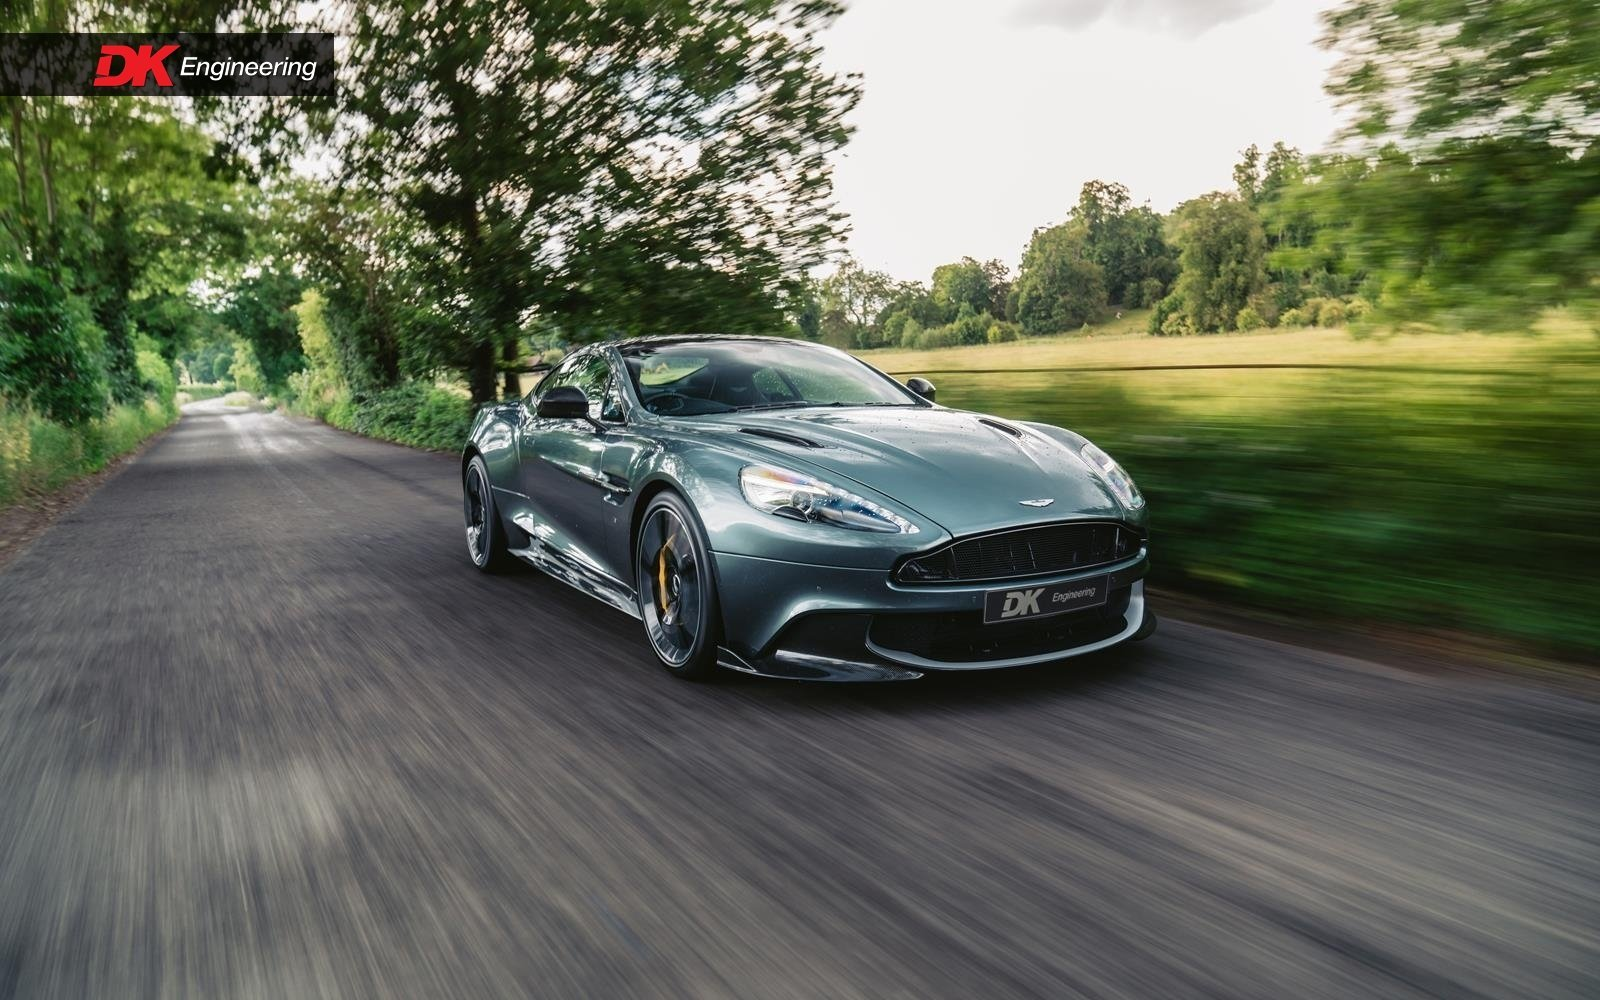 2018 Aston Martin Vanquish Rhd 200 Miles From New 1 Owner Classic Driver Market